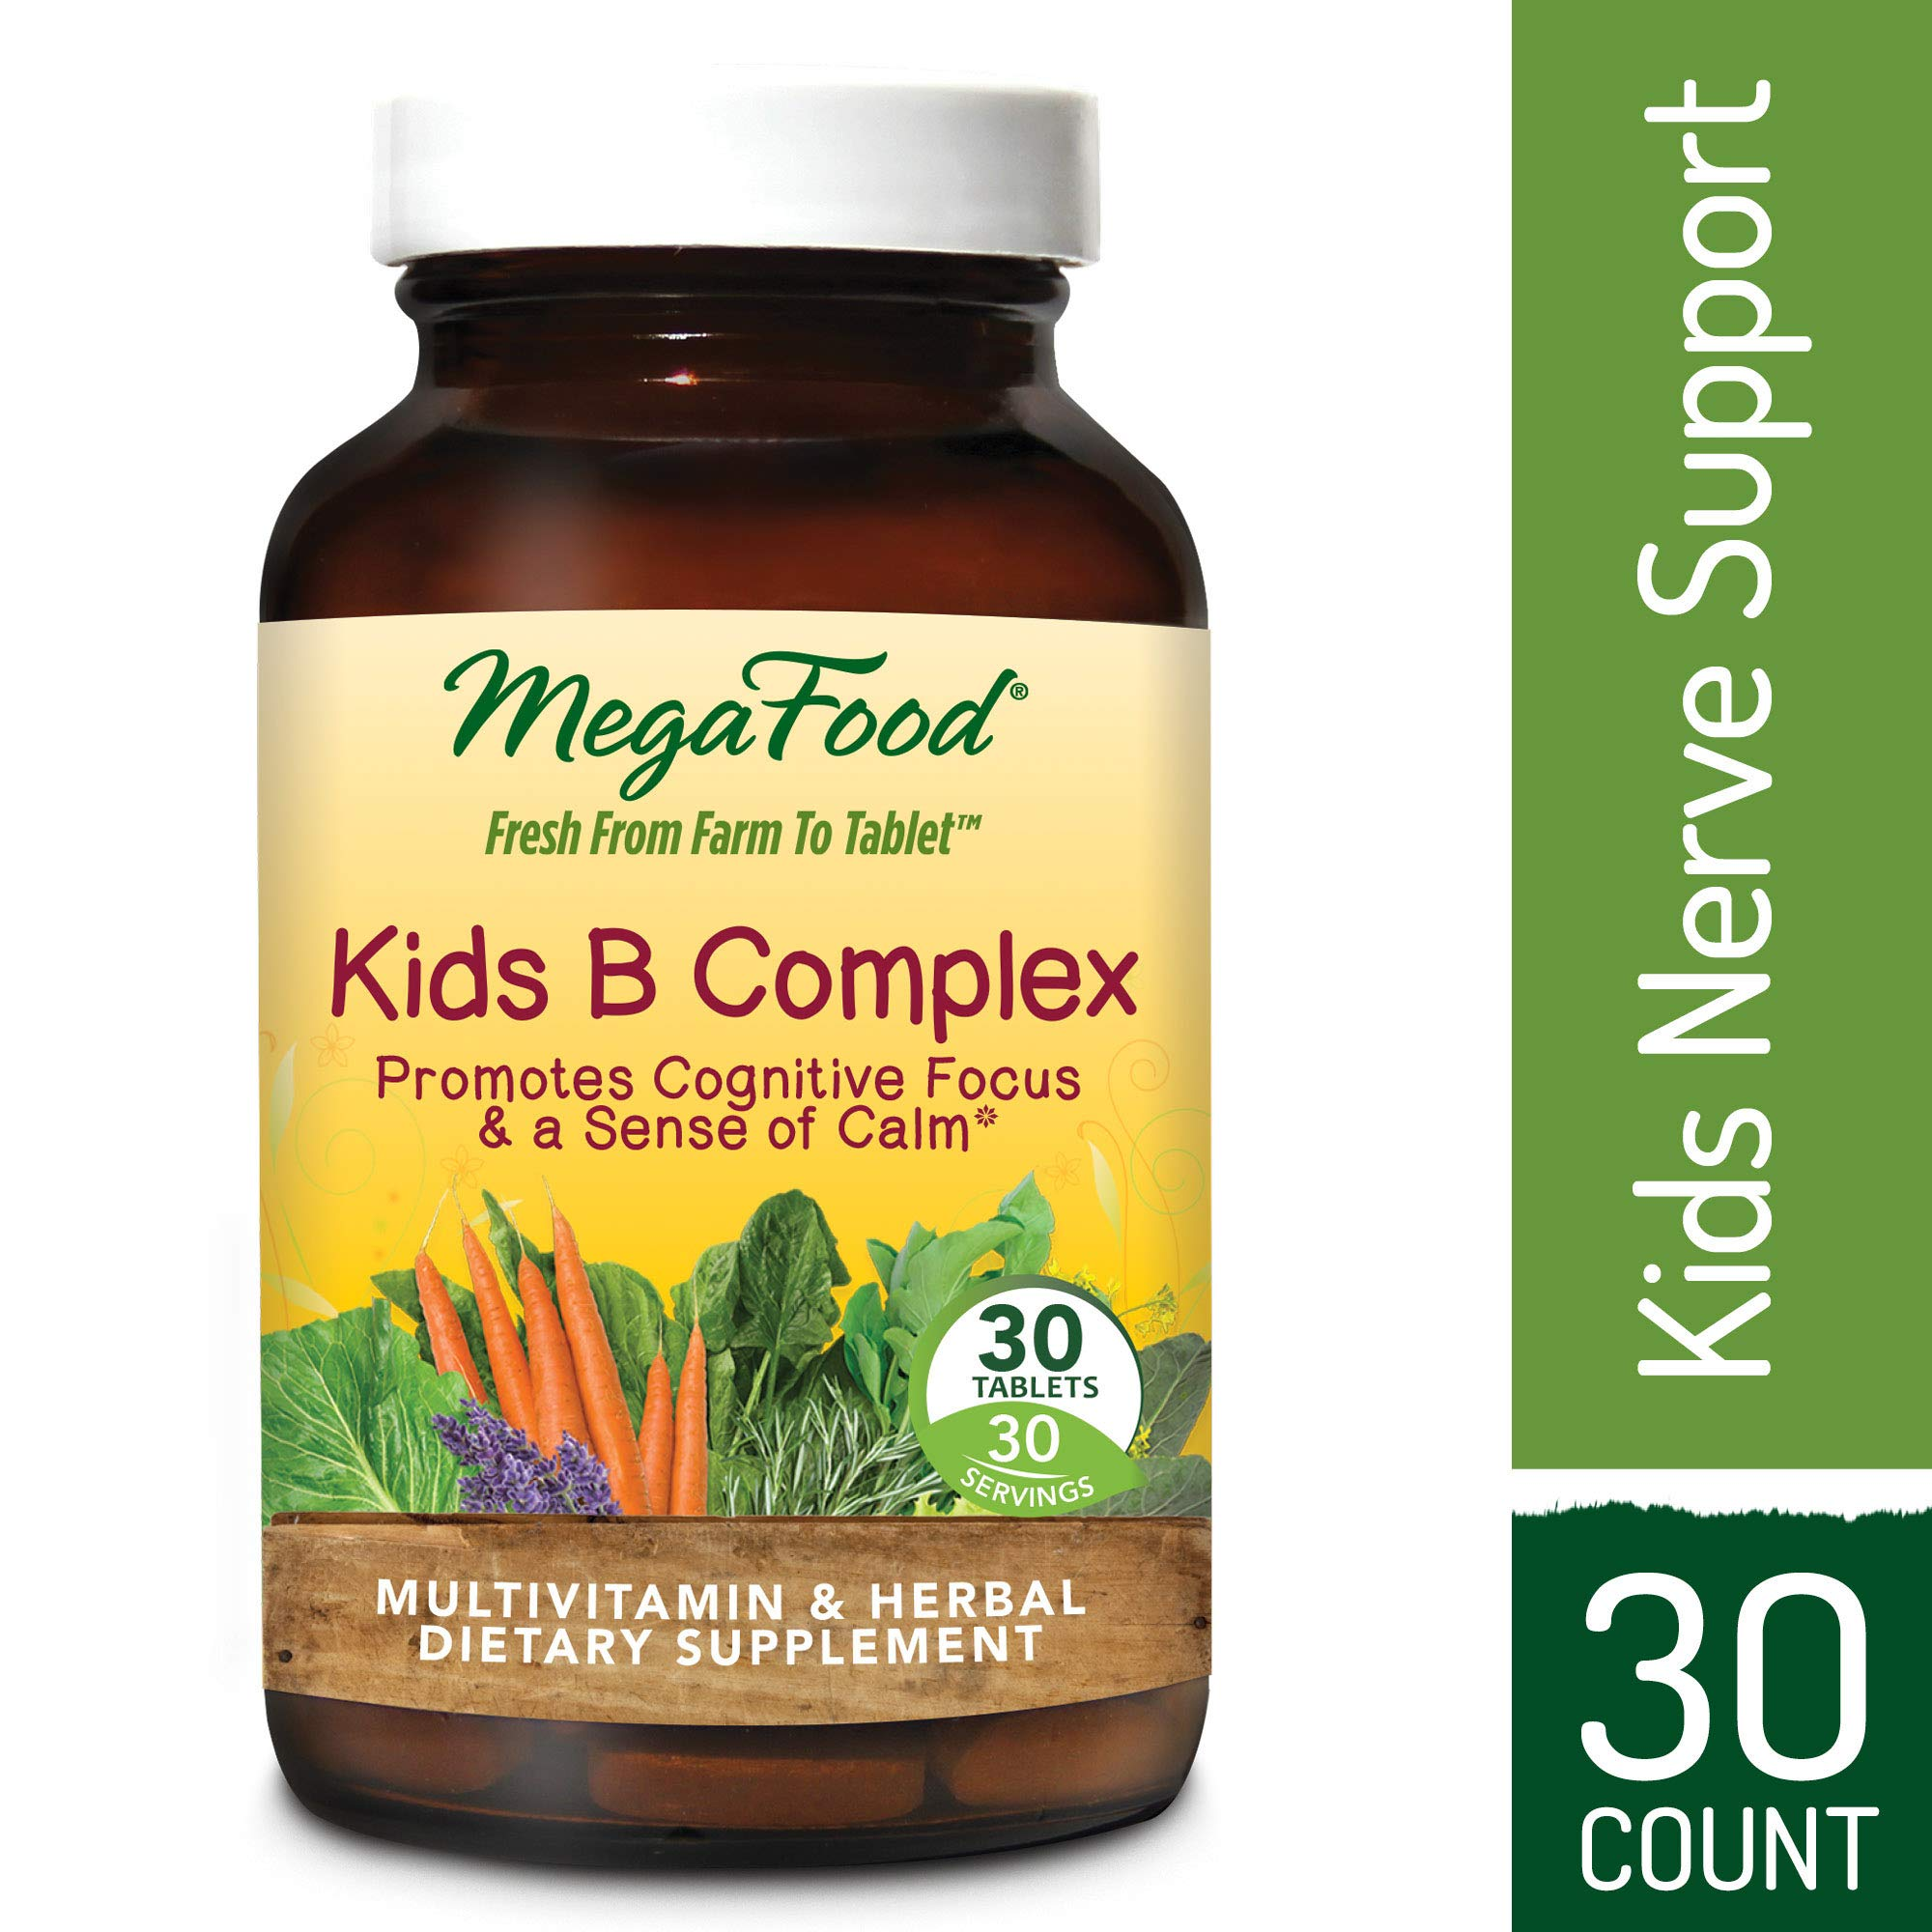 MegaFood - Kid's B Complex, Promotes a Sense of Calm, Energy Production, and Nervous System Health with L-Theanine, Choline, and B Vitamins, Vegan, Gluten-Free, Non-GMO, 30 Tablets (FFP)